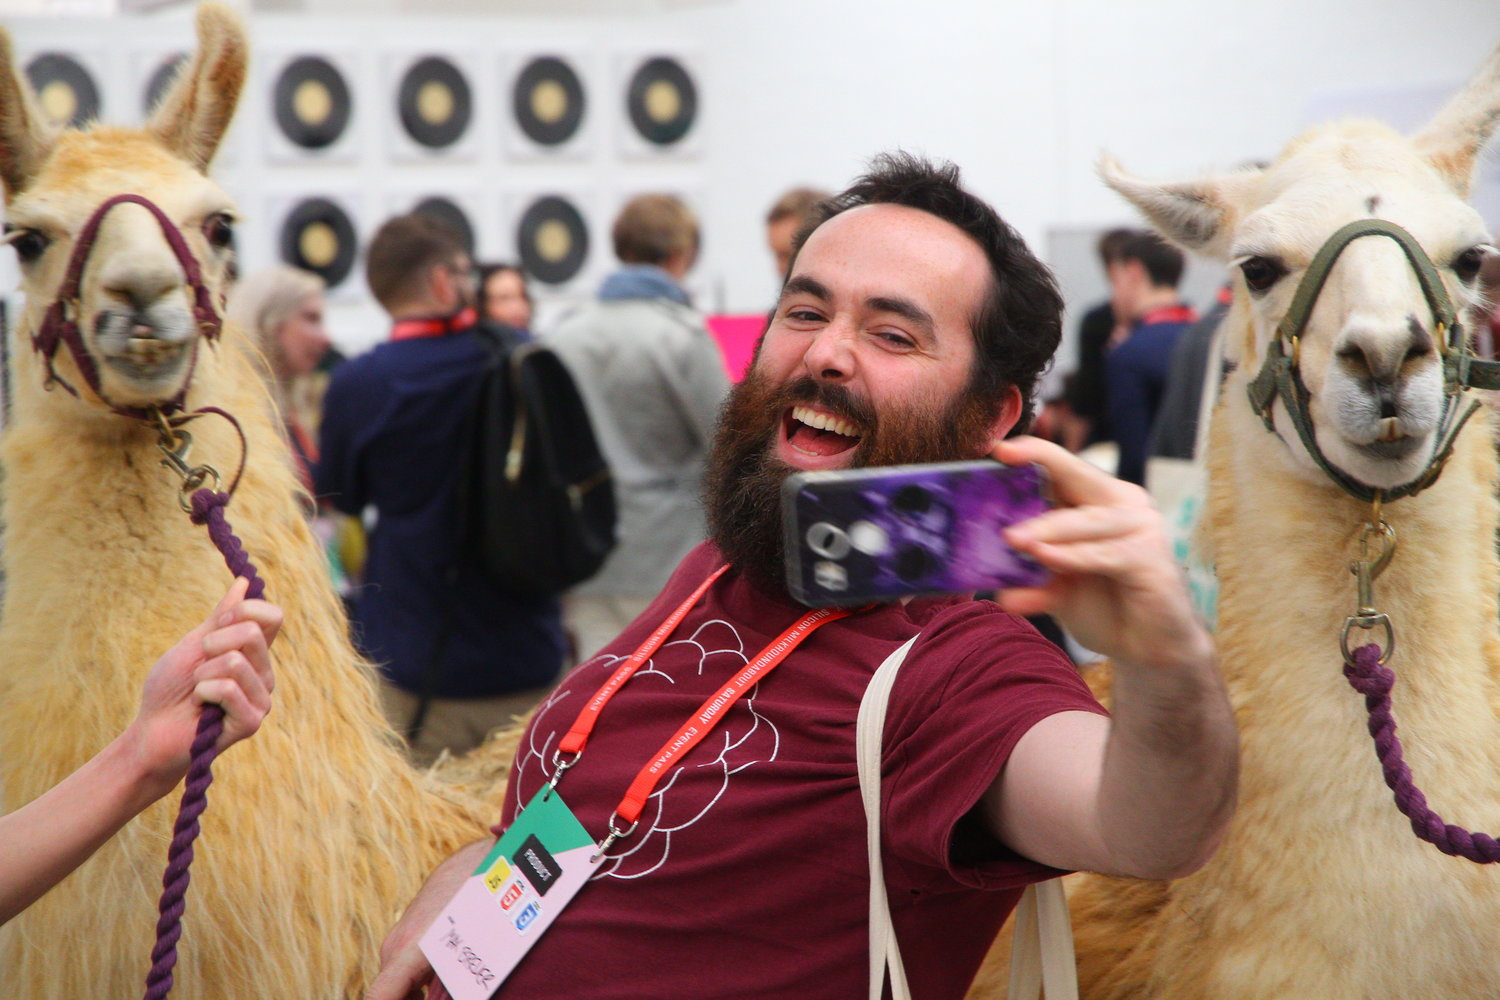 In Pictures: When Llamas Crashed A London Tech Fair